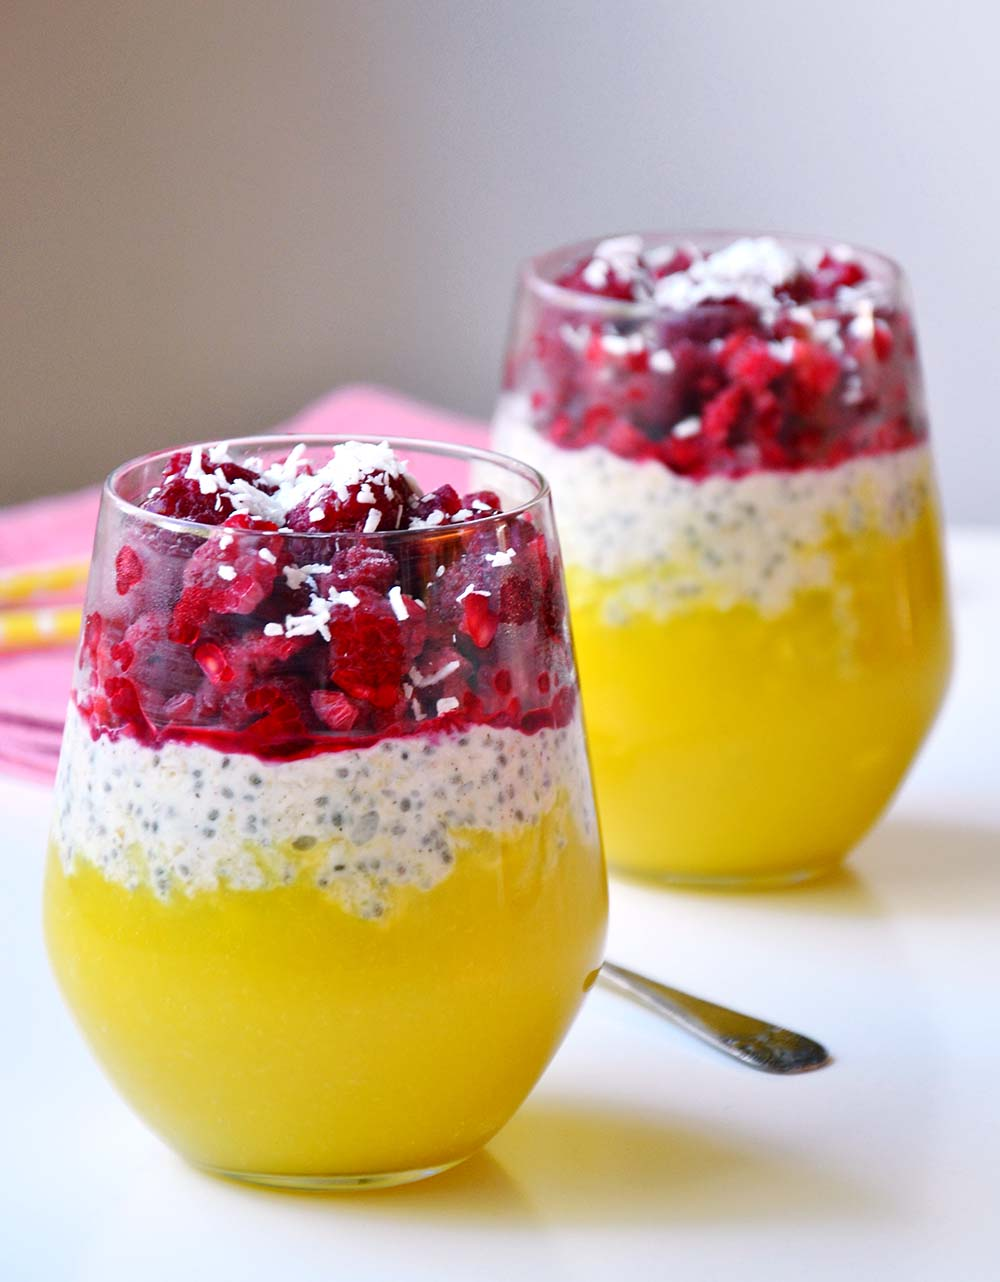 Protein overnight oats with mango and raspberries